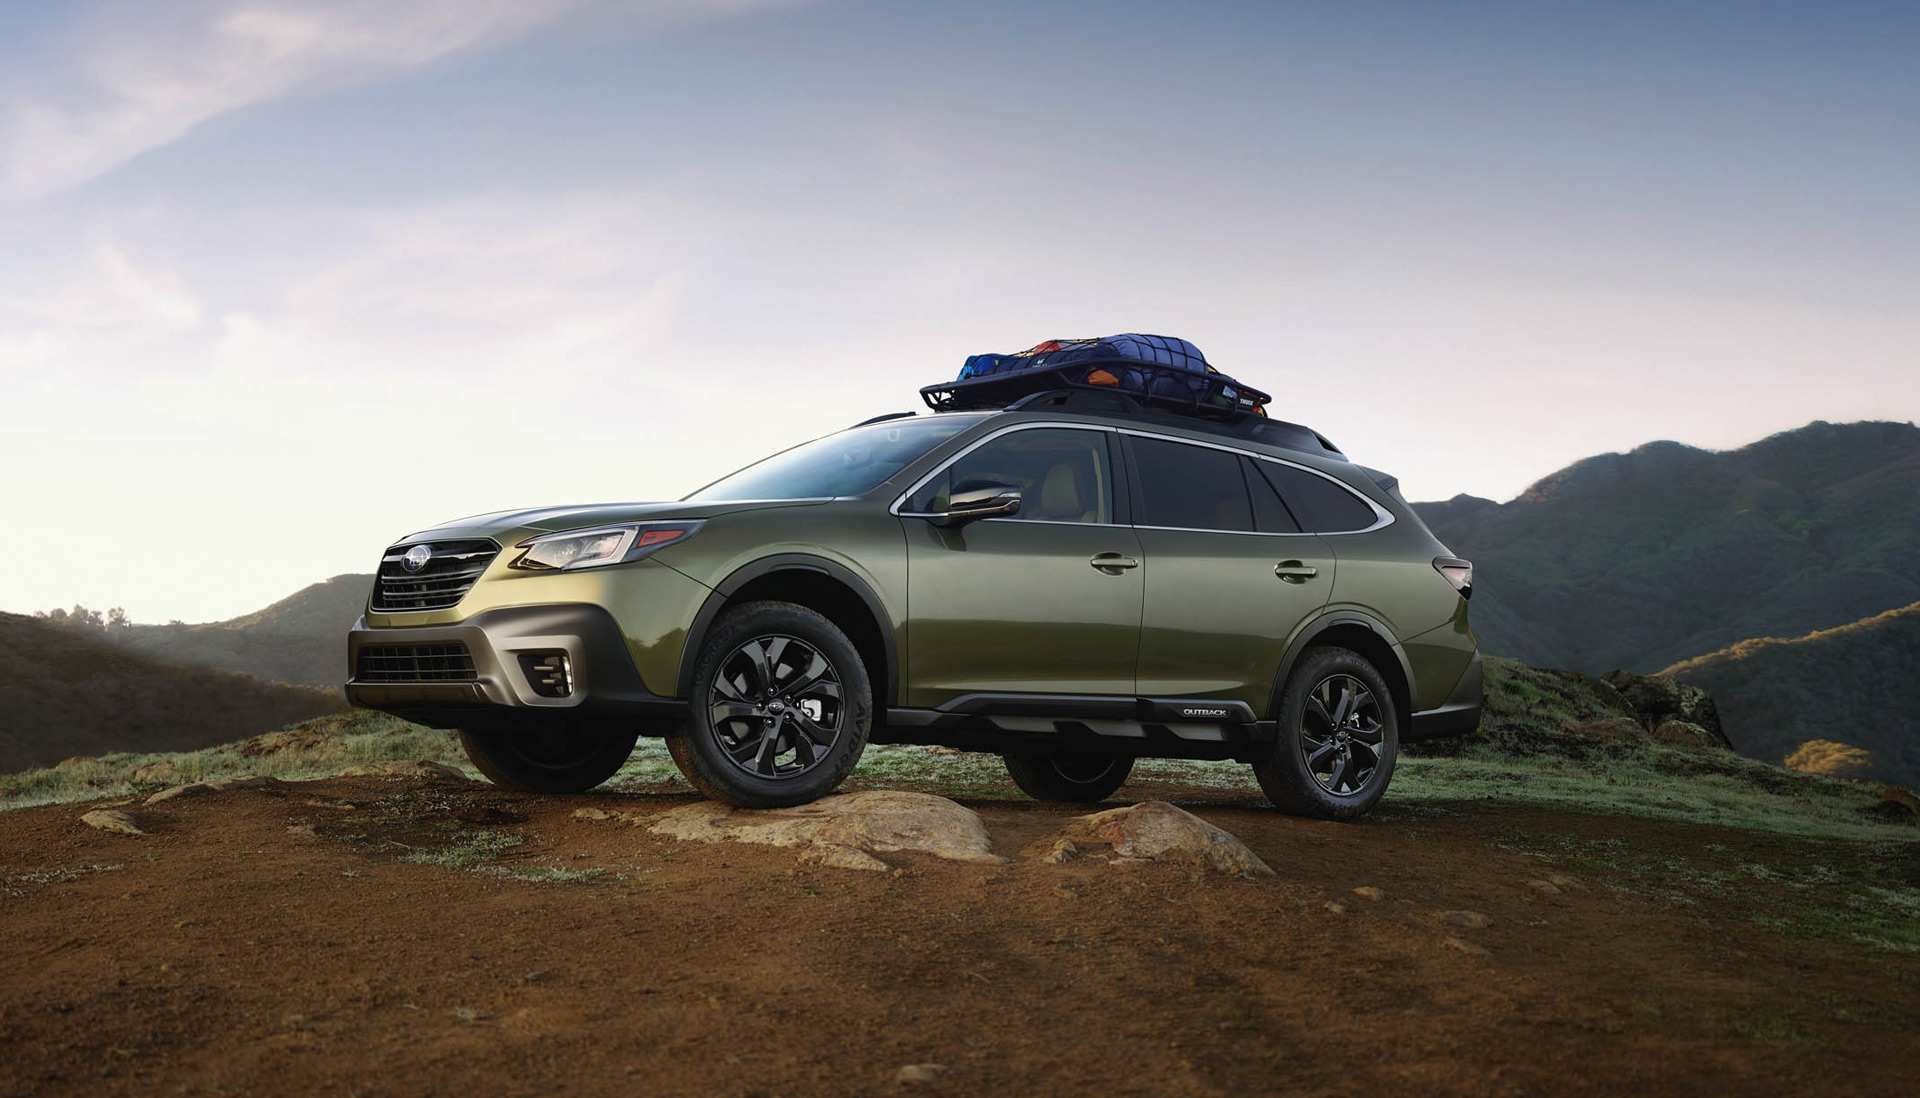 36 Great 2020 Subaru Outback Jalopnik Price and Review by 2020 Subaru Outback Jalopnik